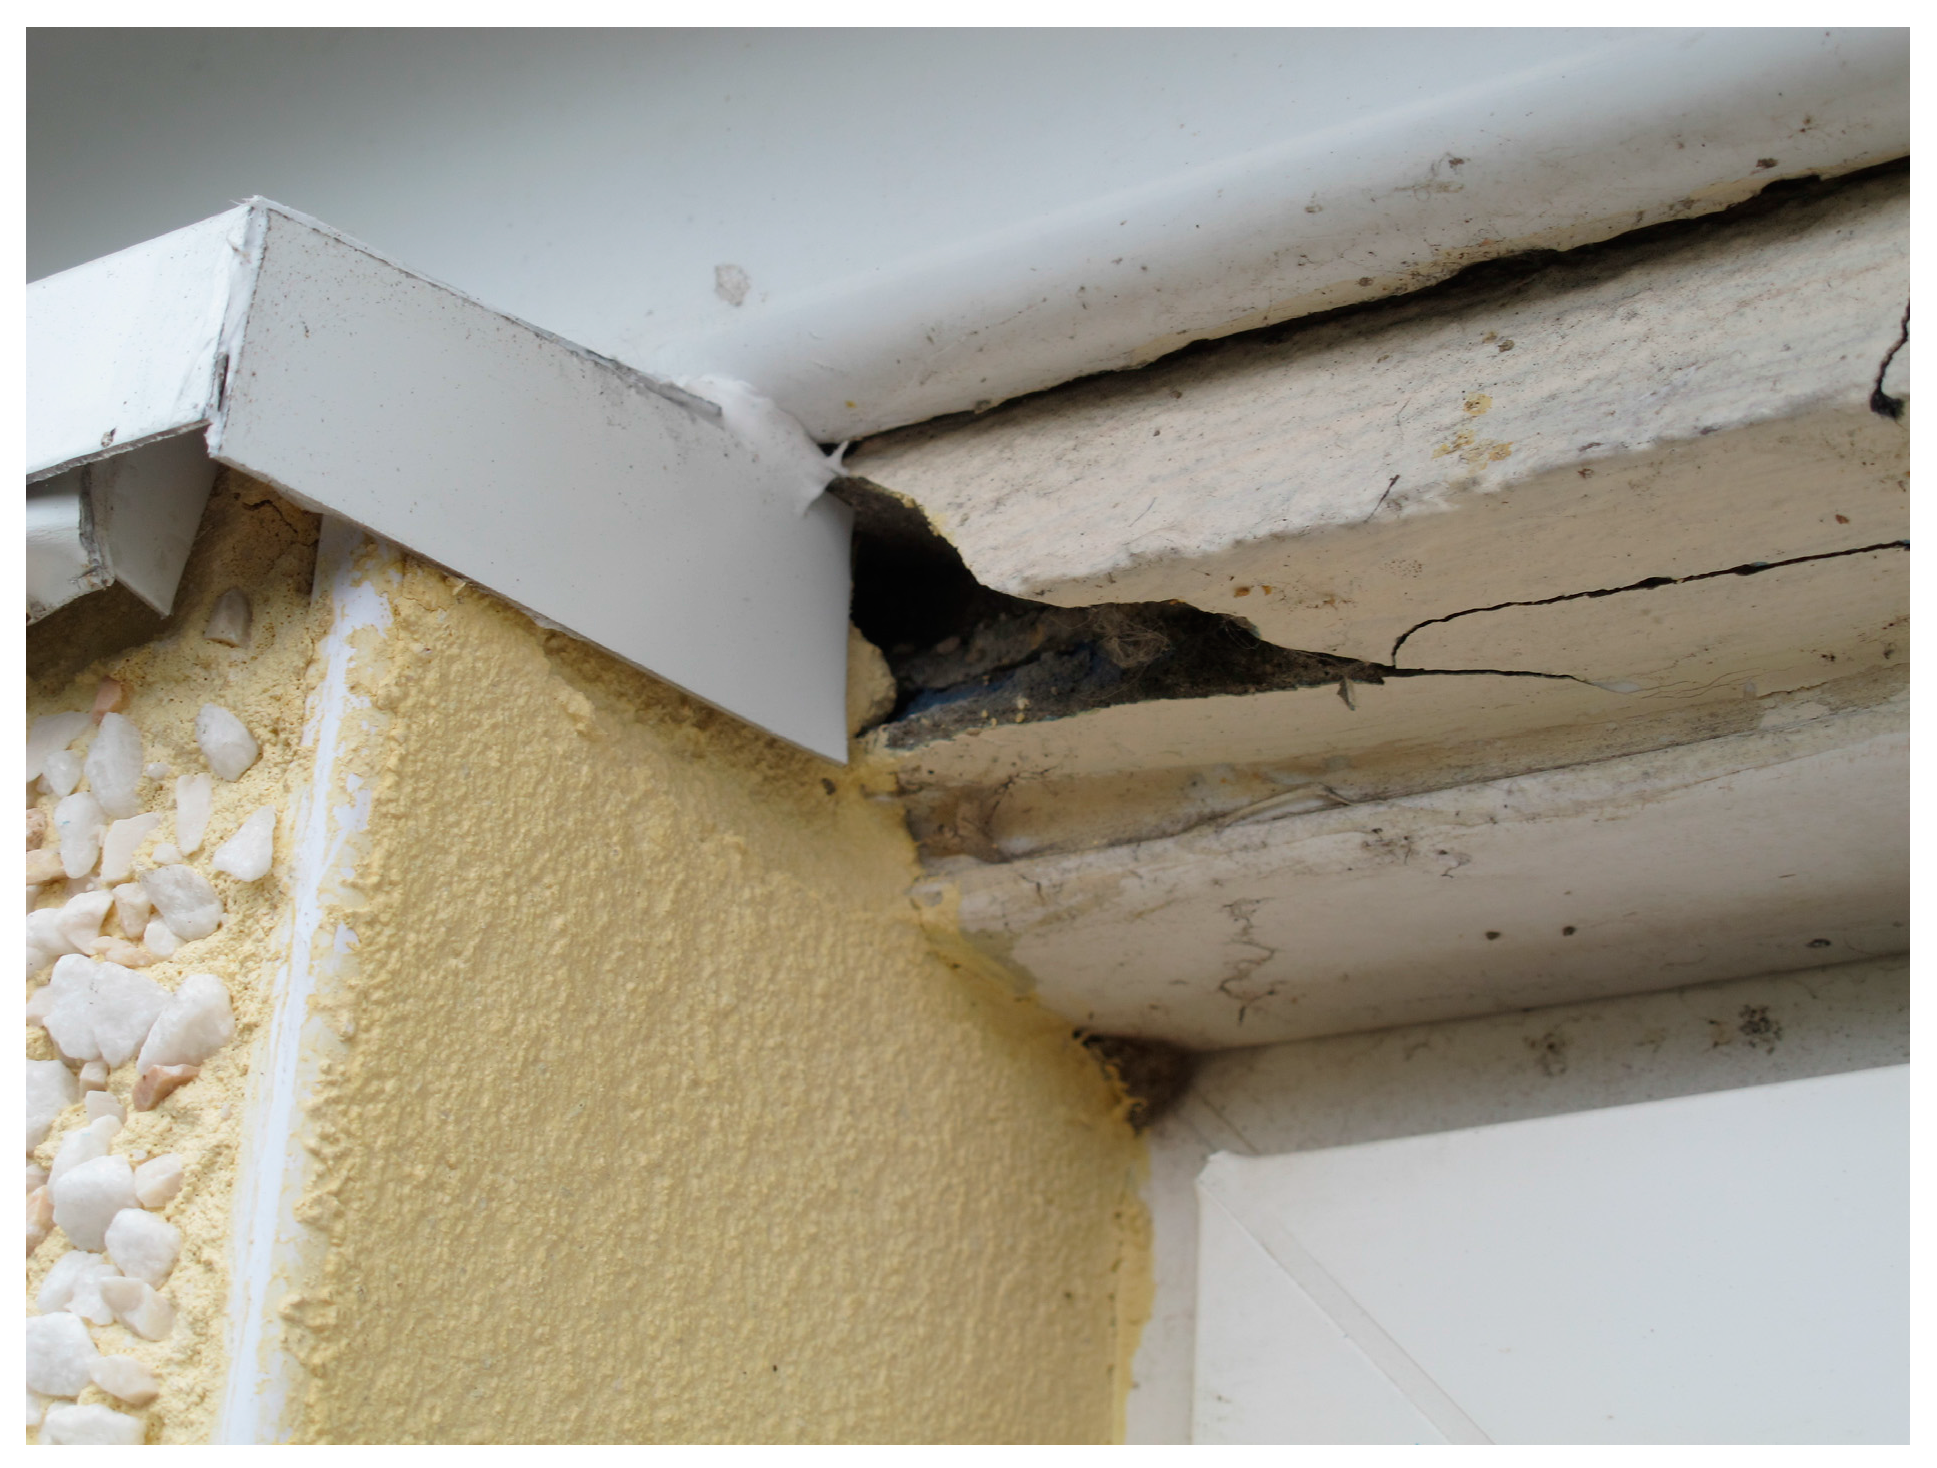 Sustainability Free Full Text Evaluation Of A Regional Retrofit Average Cost Rewiring Terraced House 08 01261 G010